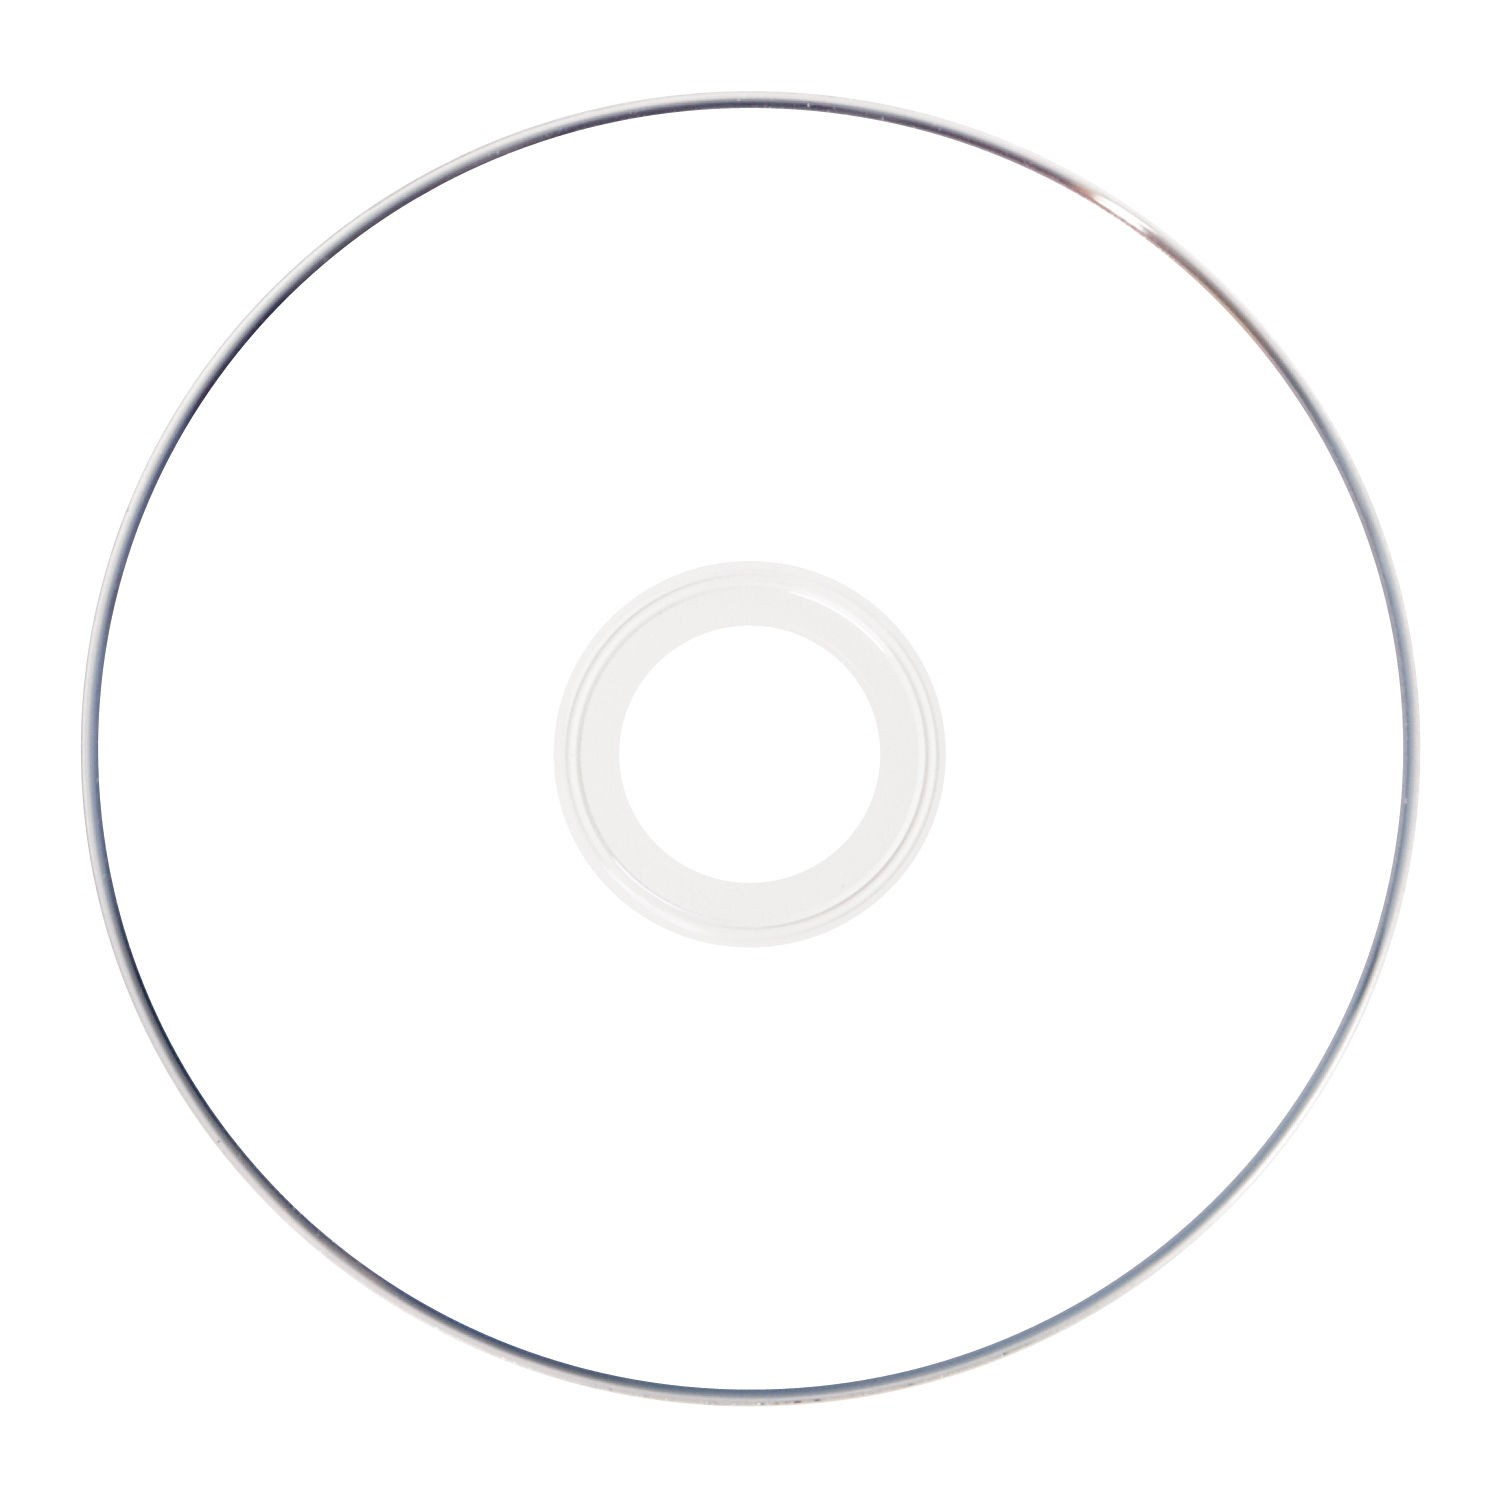 Cd R80 700mb Printabil Full Surface